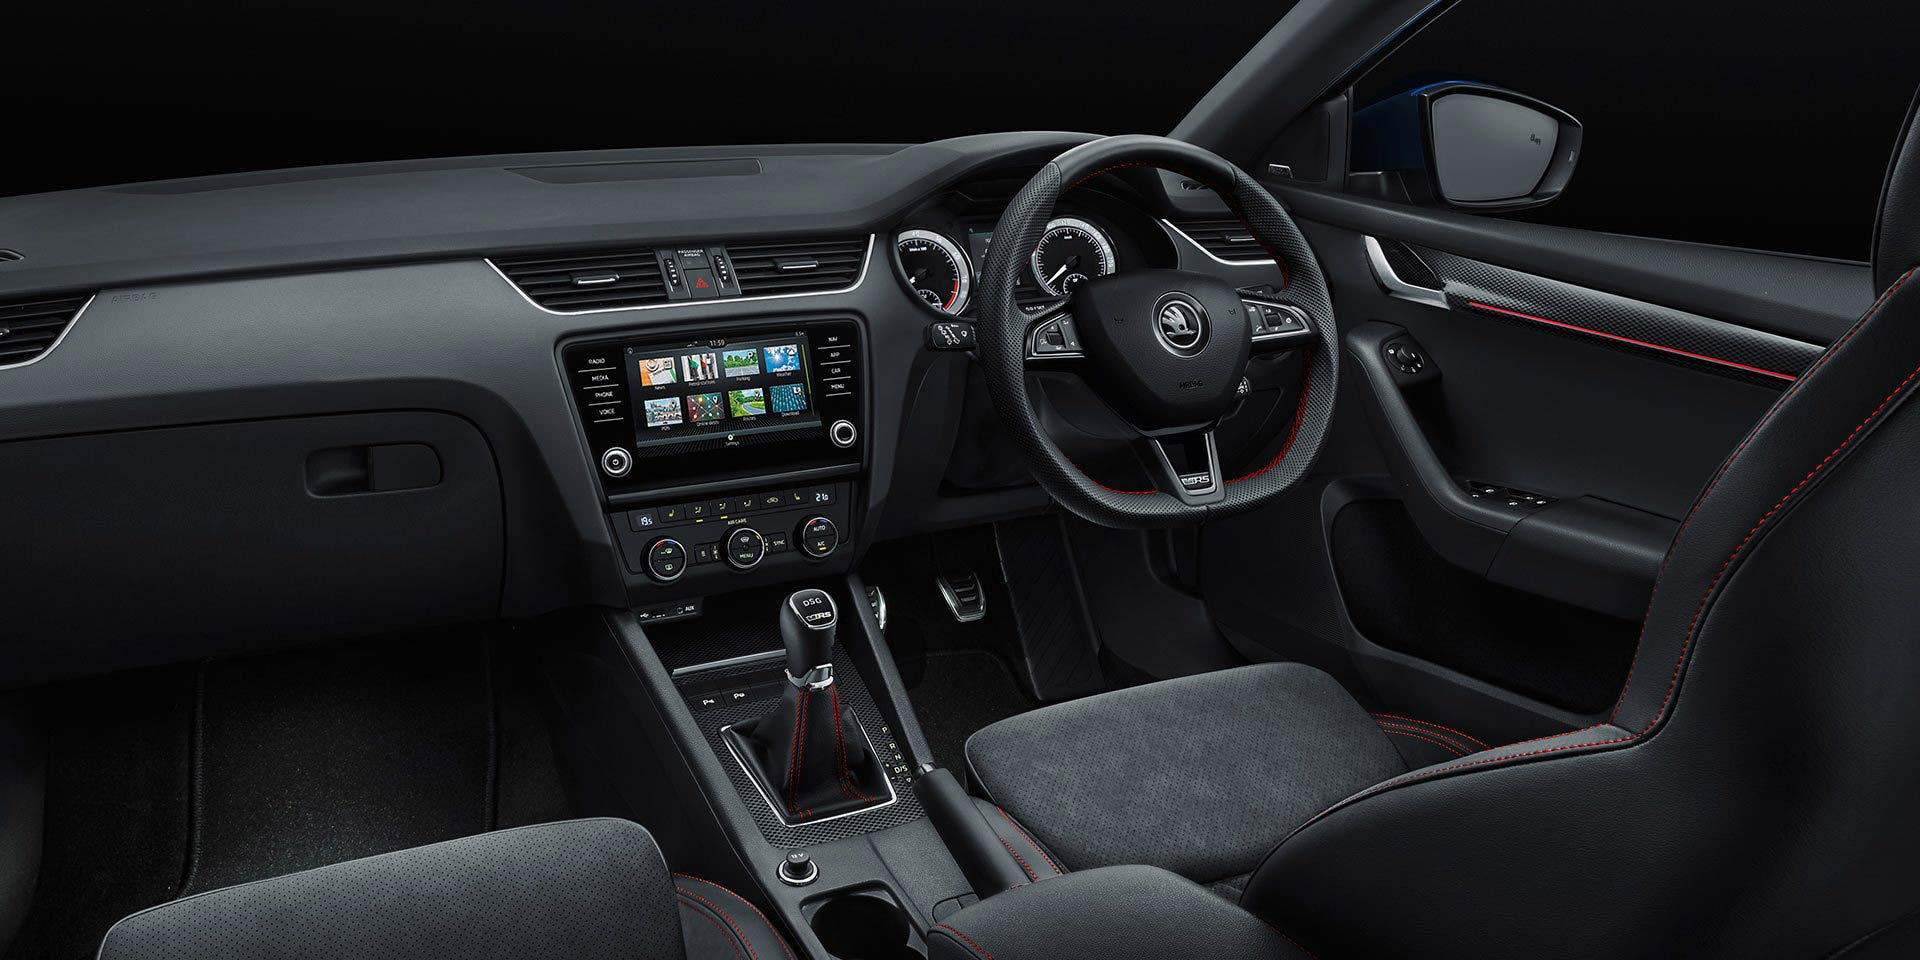 Skoda-Octavia-RS-Interior-India.jpg#Actu